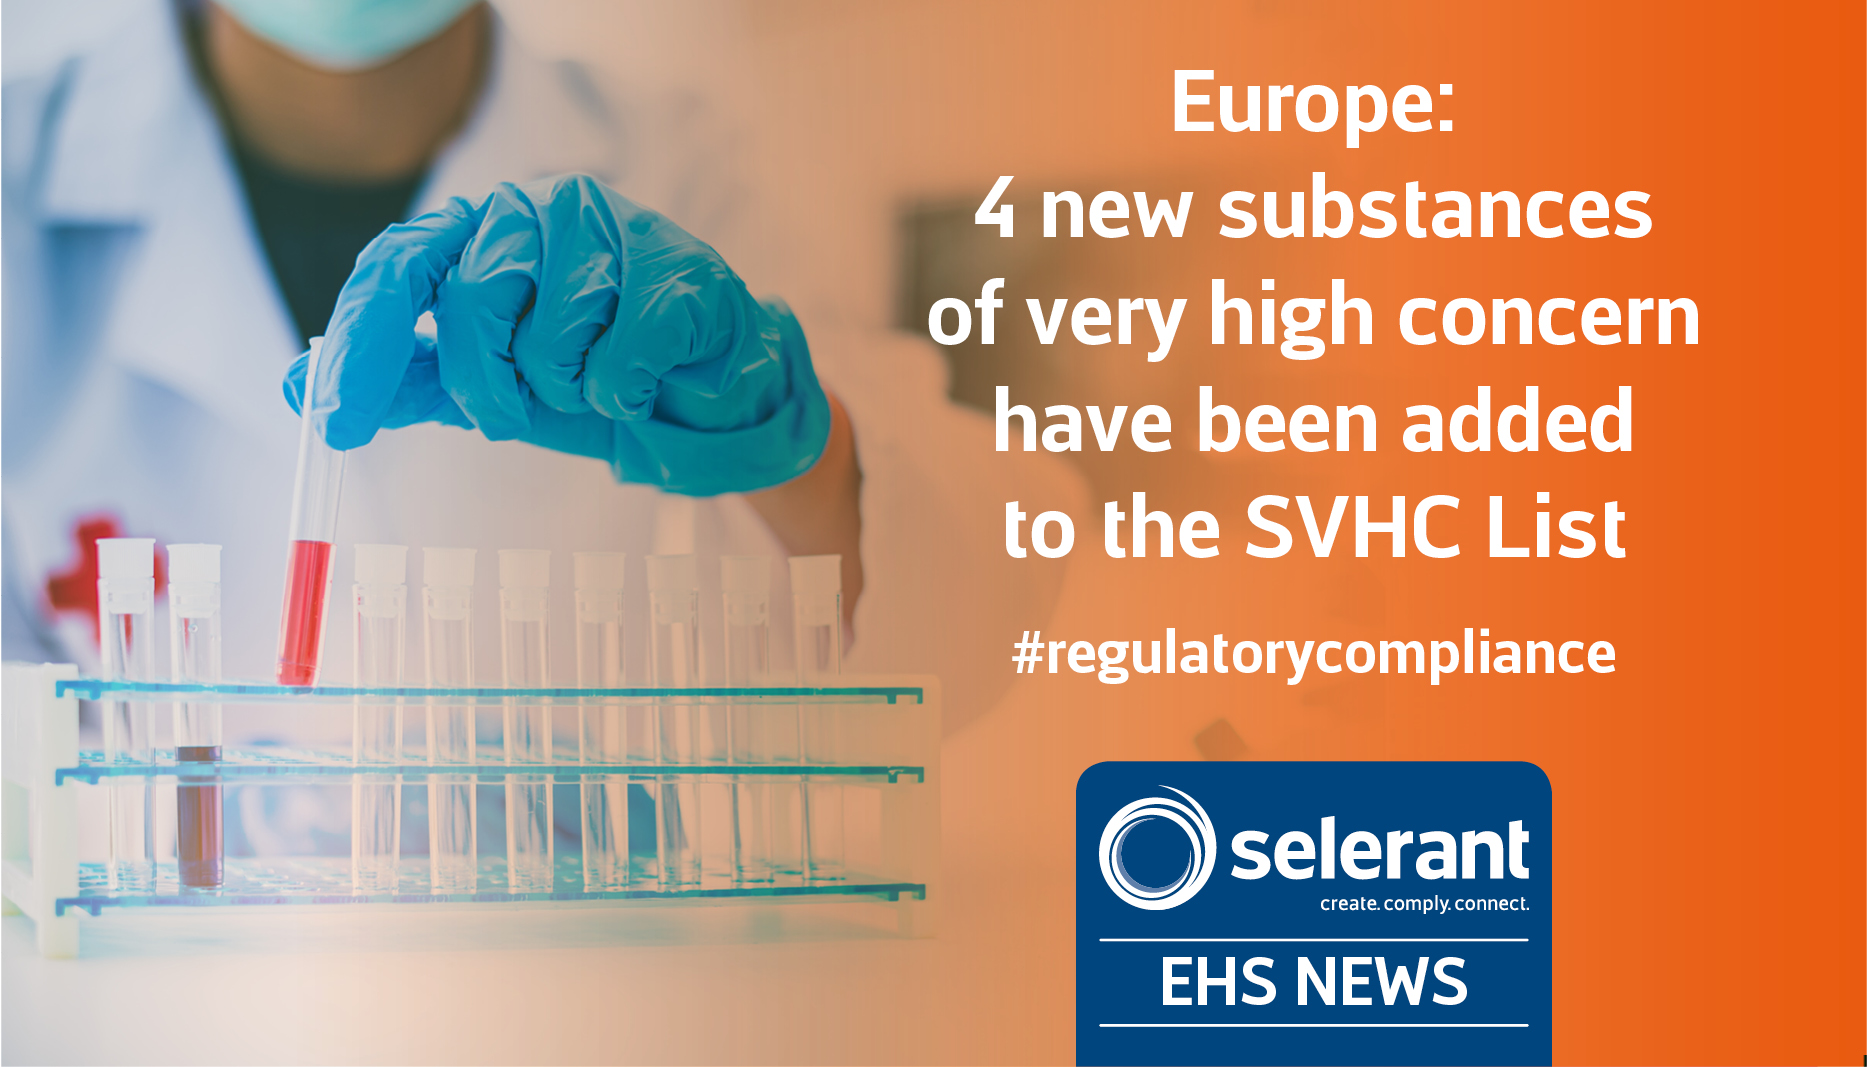 Europe: 4 new substances of very high concern have been added to the SVHC List